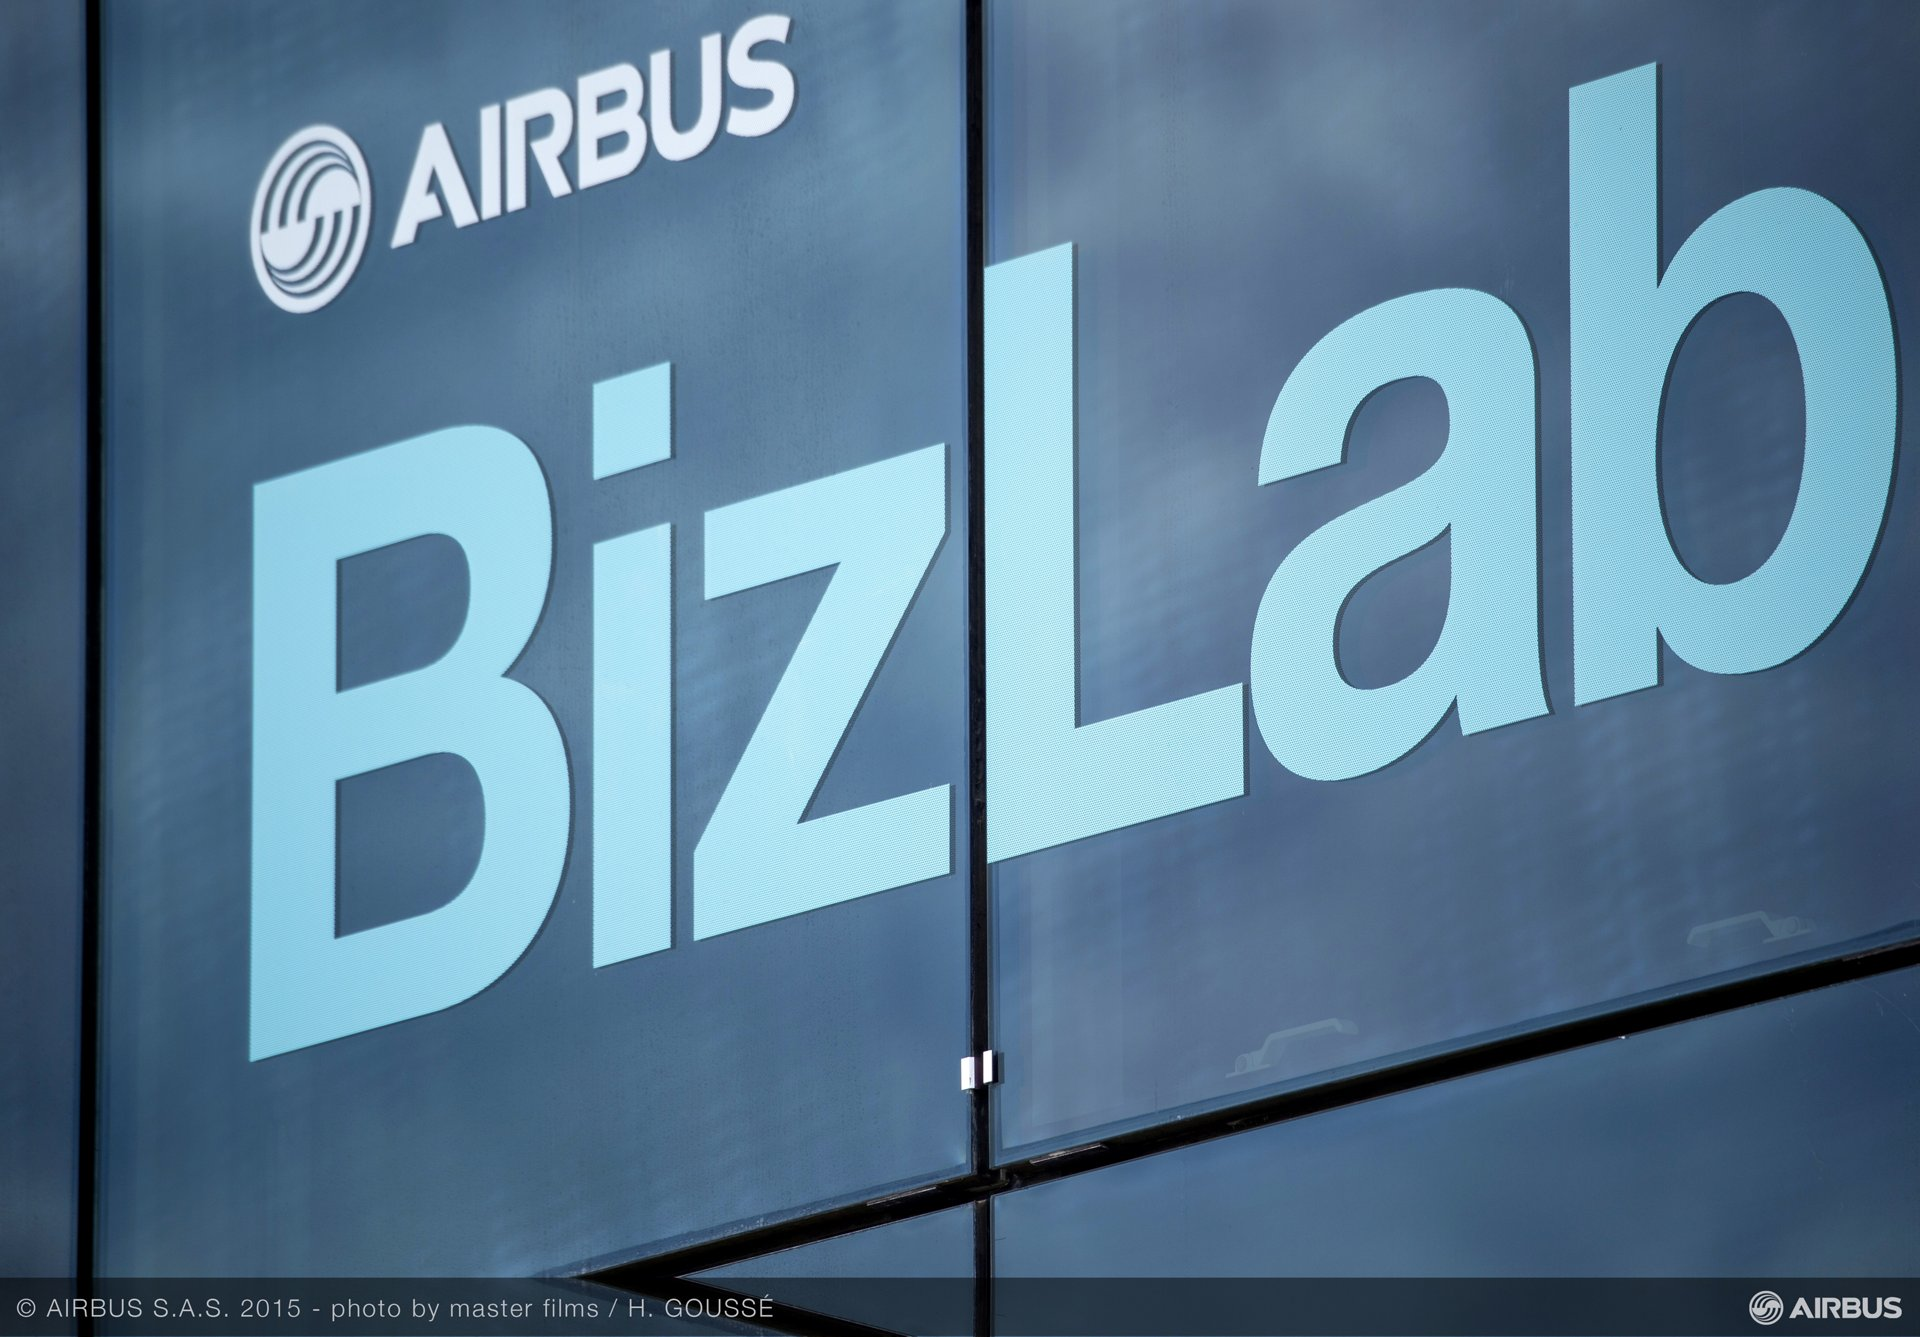 With over a year of successful operation since its launch in March 2015, the Airbus BizLab in Toulouse is once again inviting innovative start-ups to apply with its second call for projects